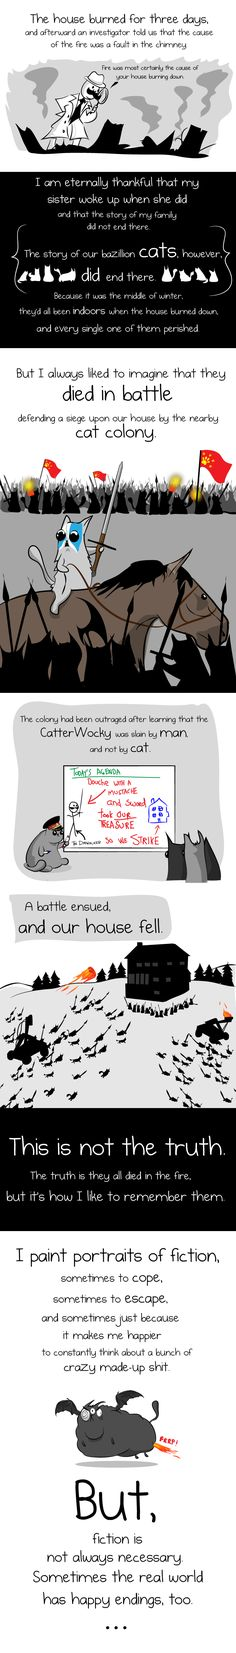 When your house is burning down, you should brush your teeth - The Oatmeal